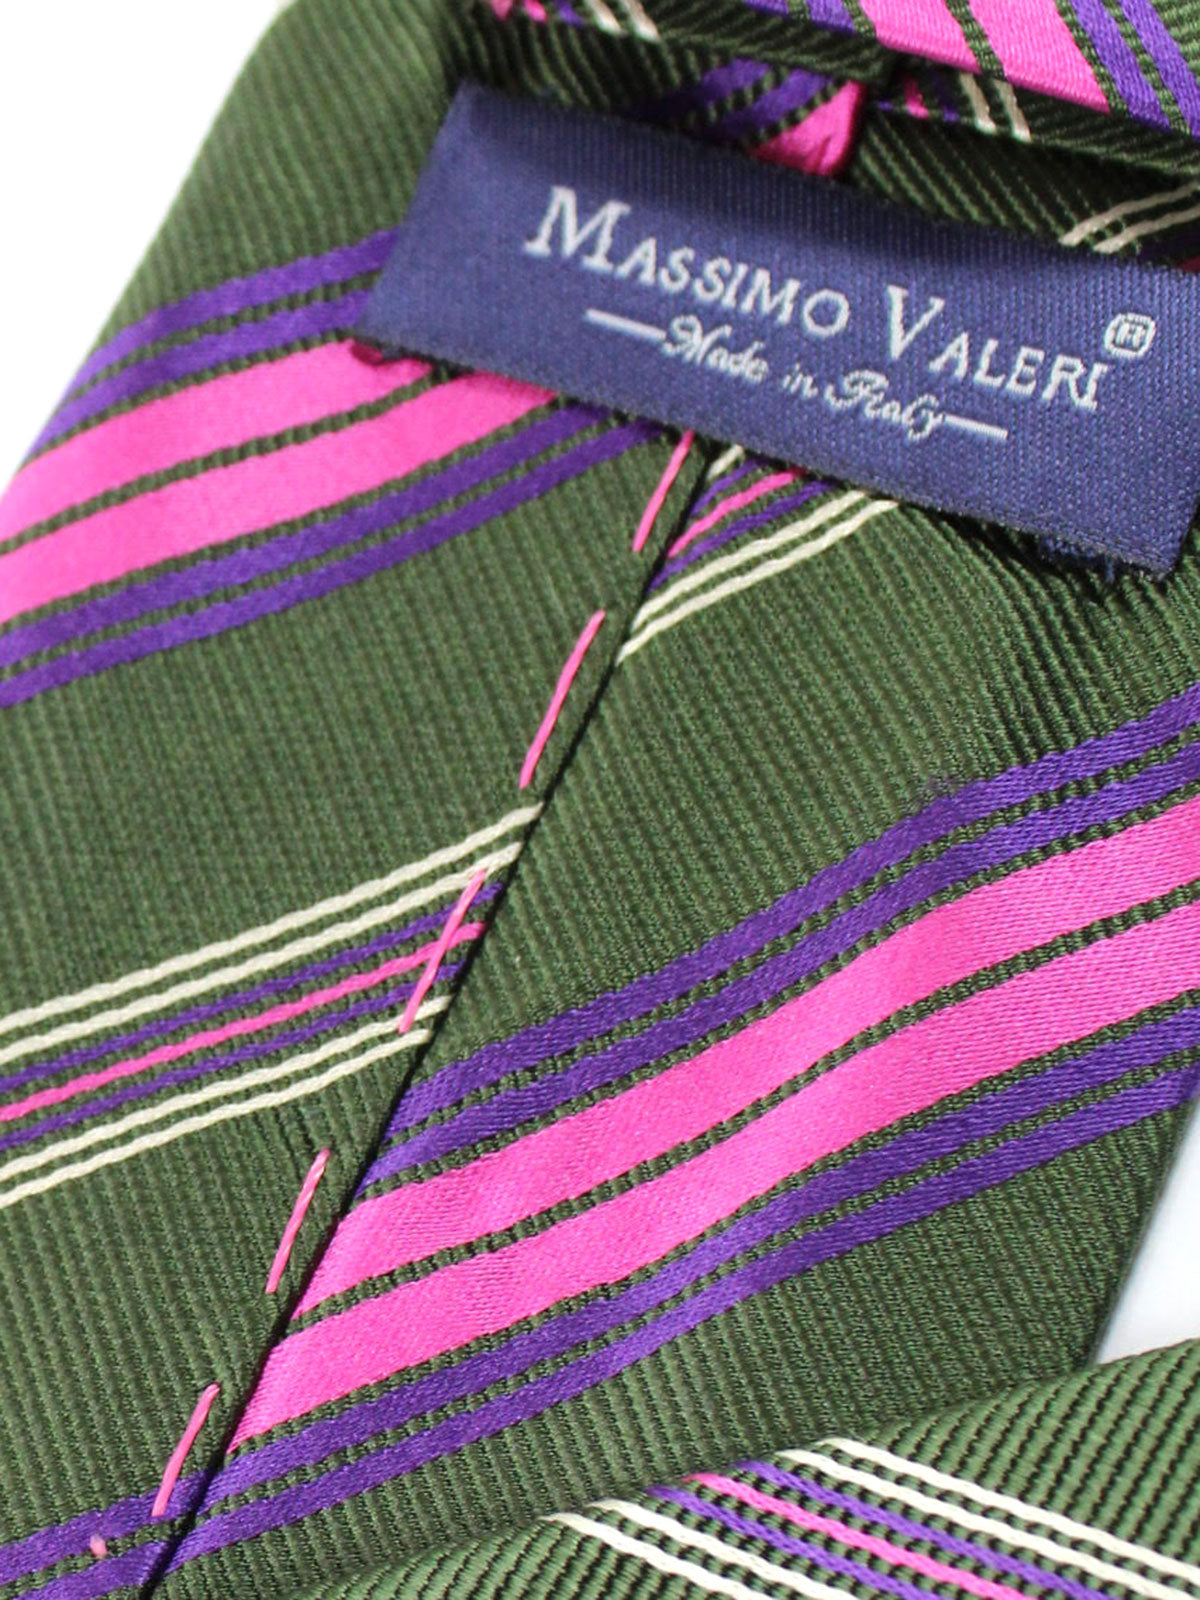 Massimo Valeri Extra Long Tie Dark Green Purple Pink Stripes